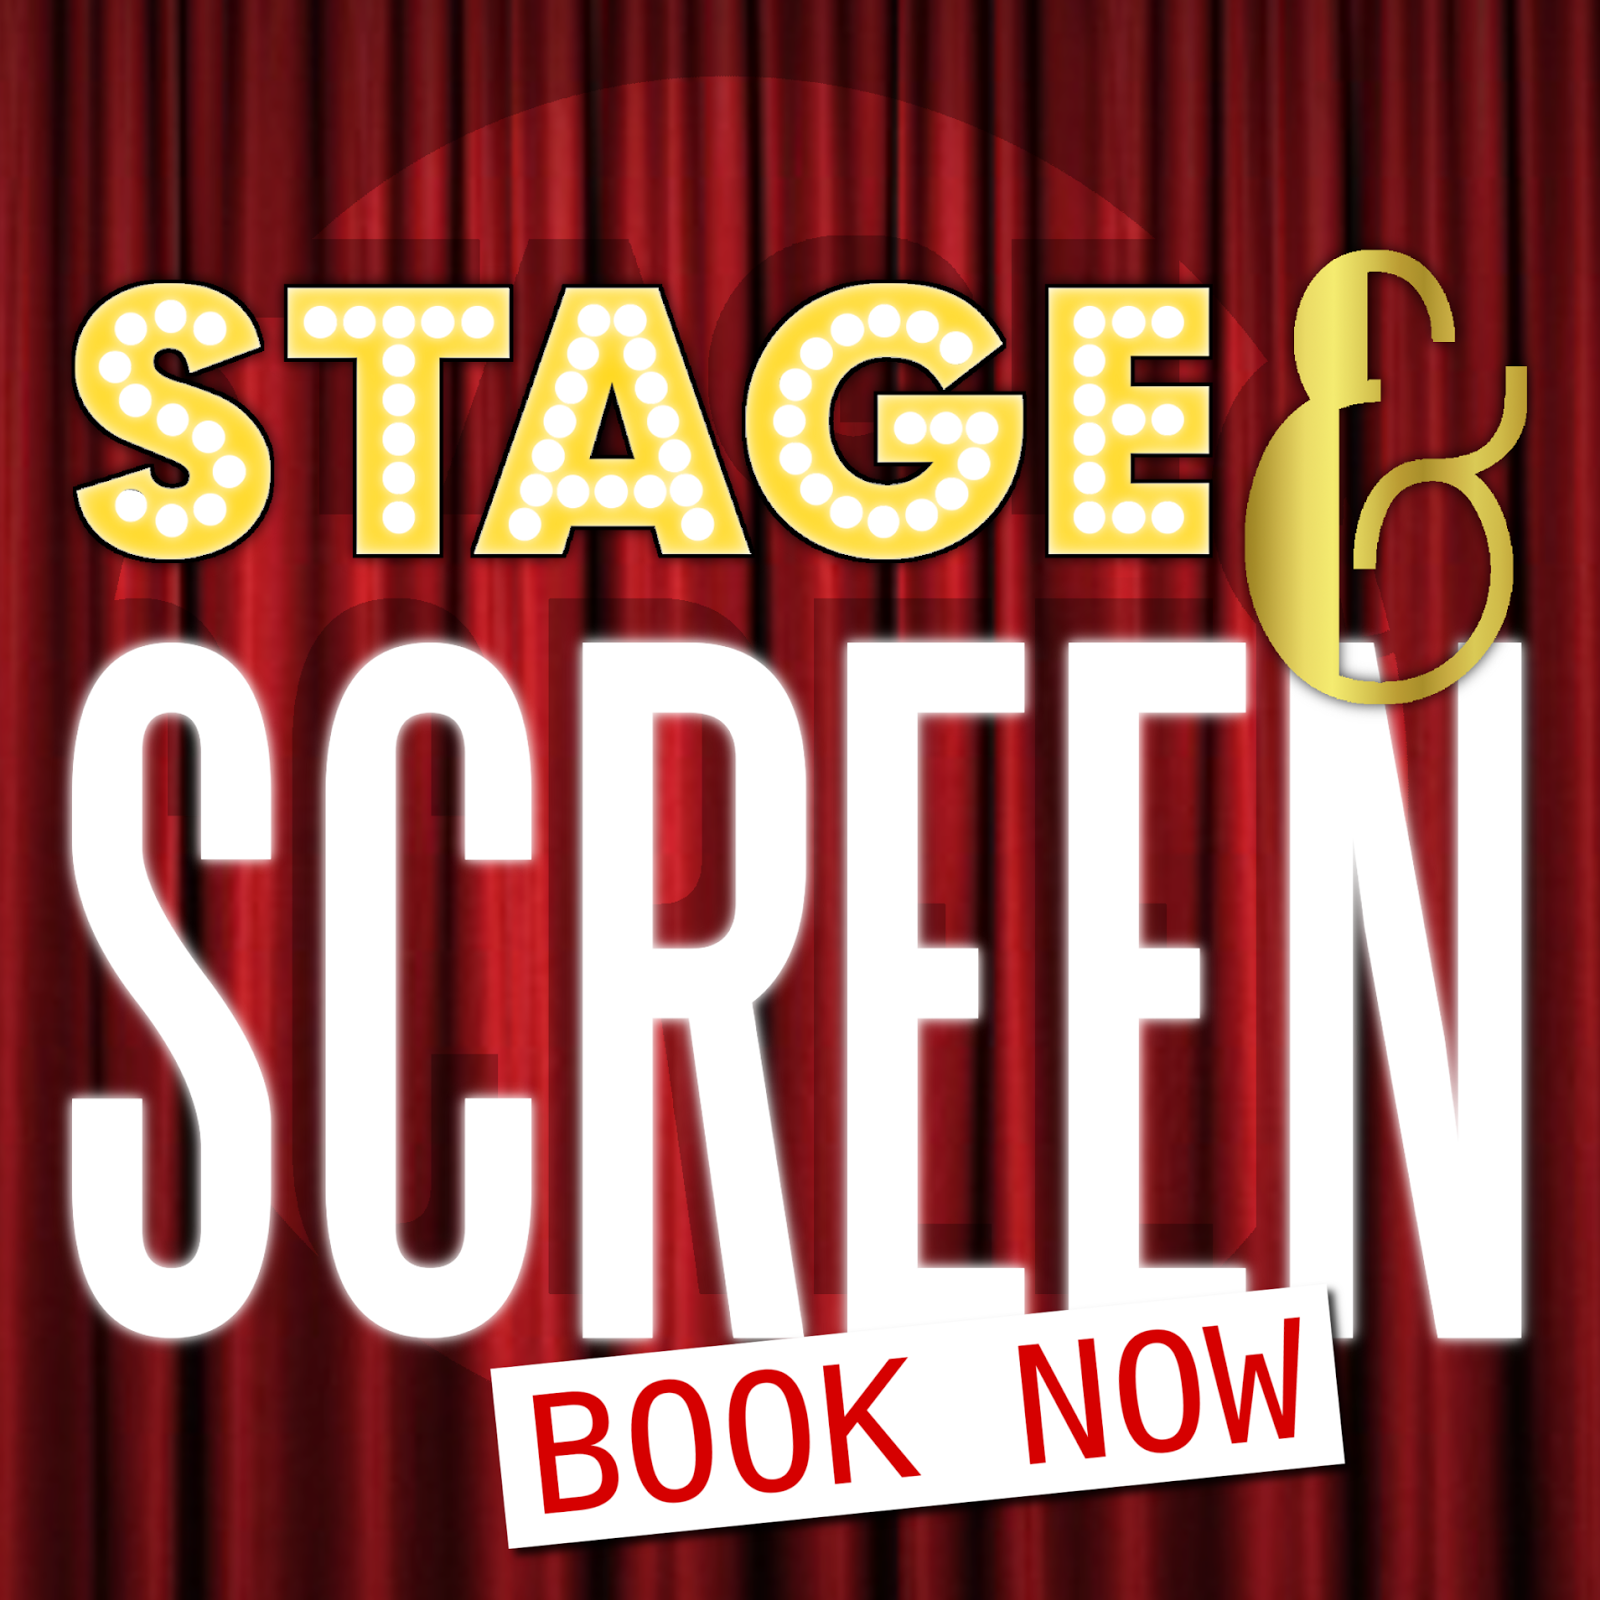 STAGE & SCREEN - 8th July - Book Now!